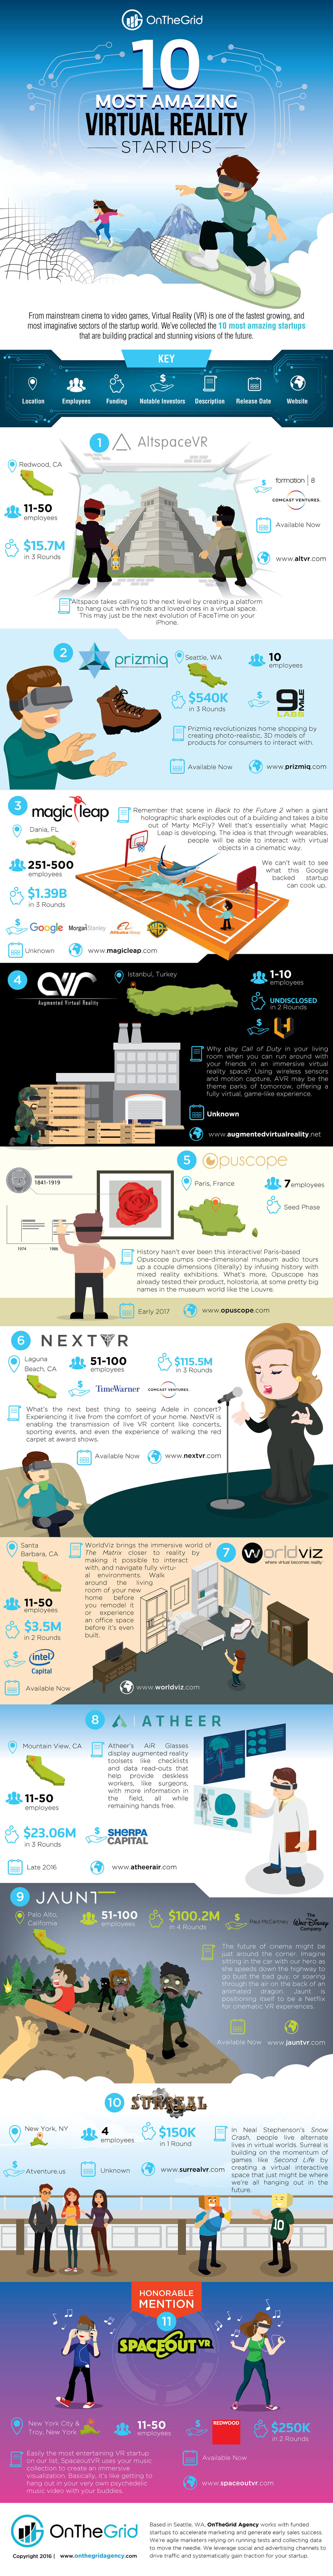 Awesome Virtual Reality Startups - Business Infographic